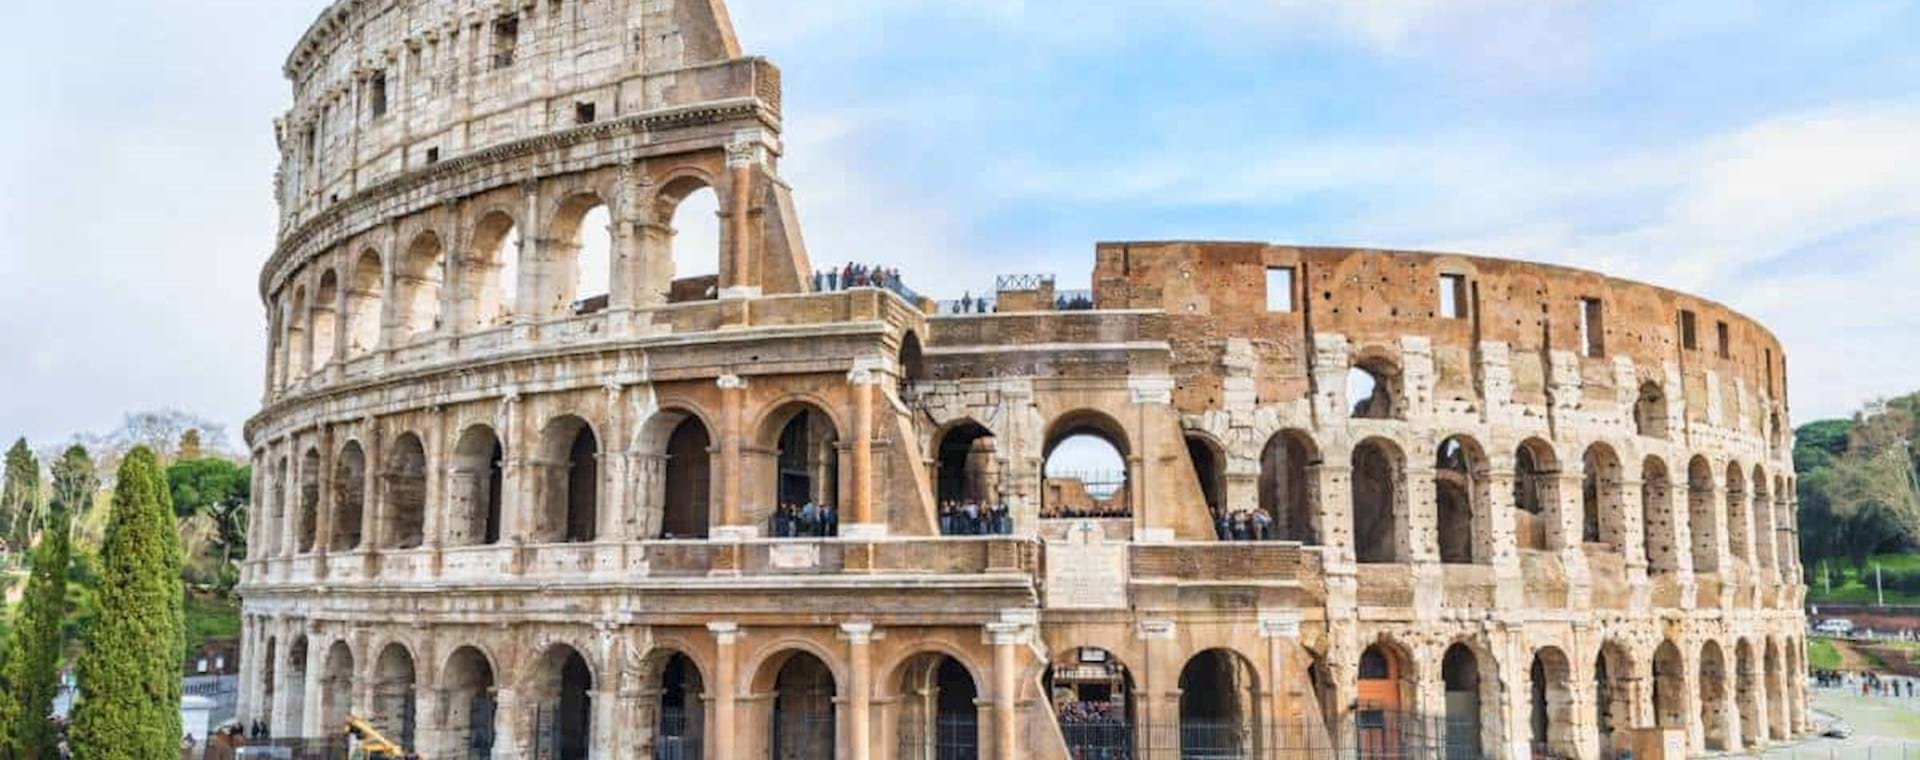 Front view of the Colosseum on a sunny day in Rome